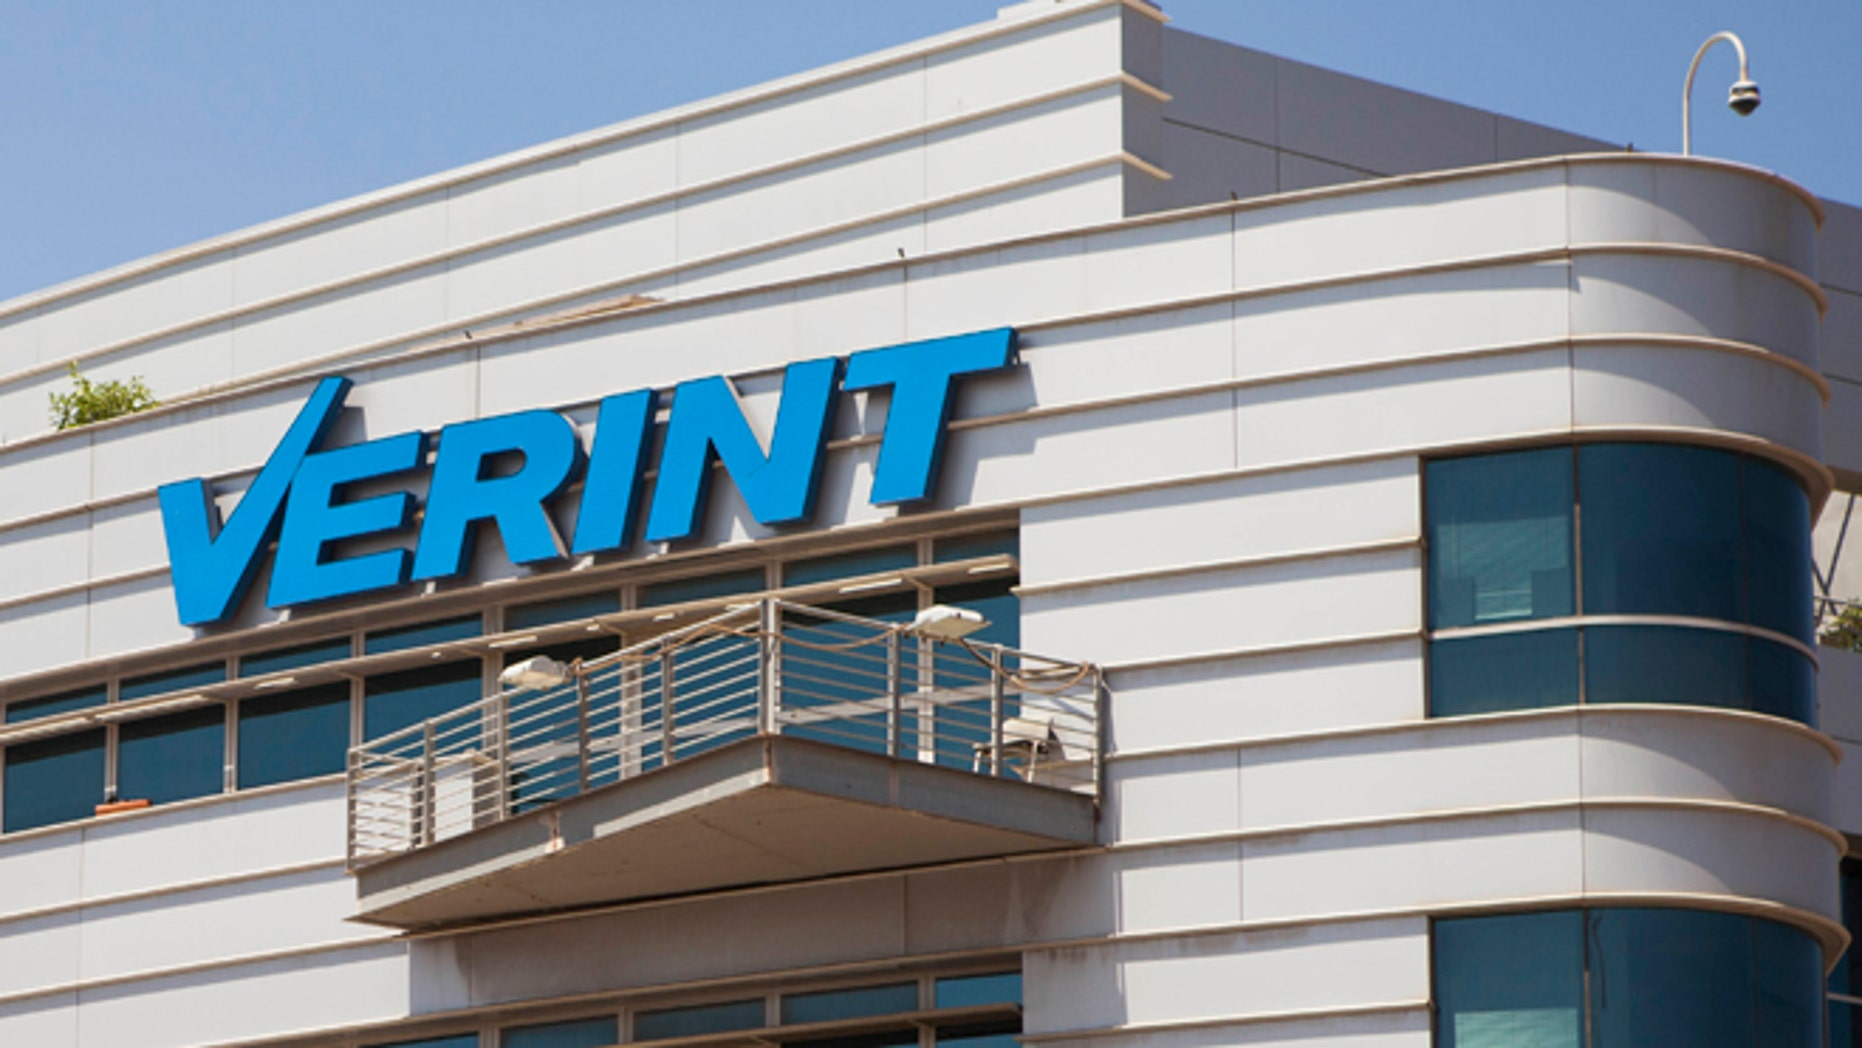 The Verint offices in Herzliya, Israel.